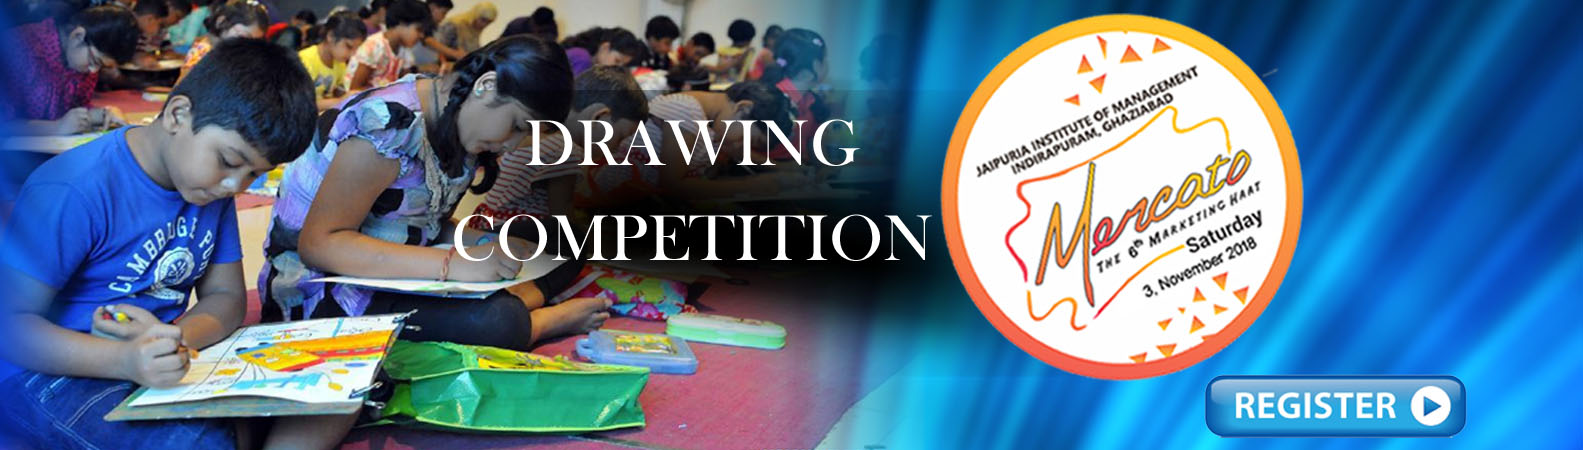 Drawing-comp-1